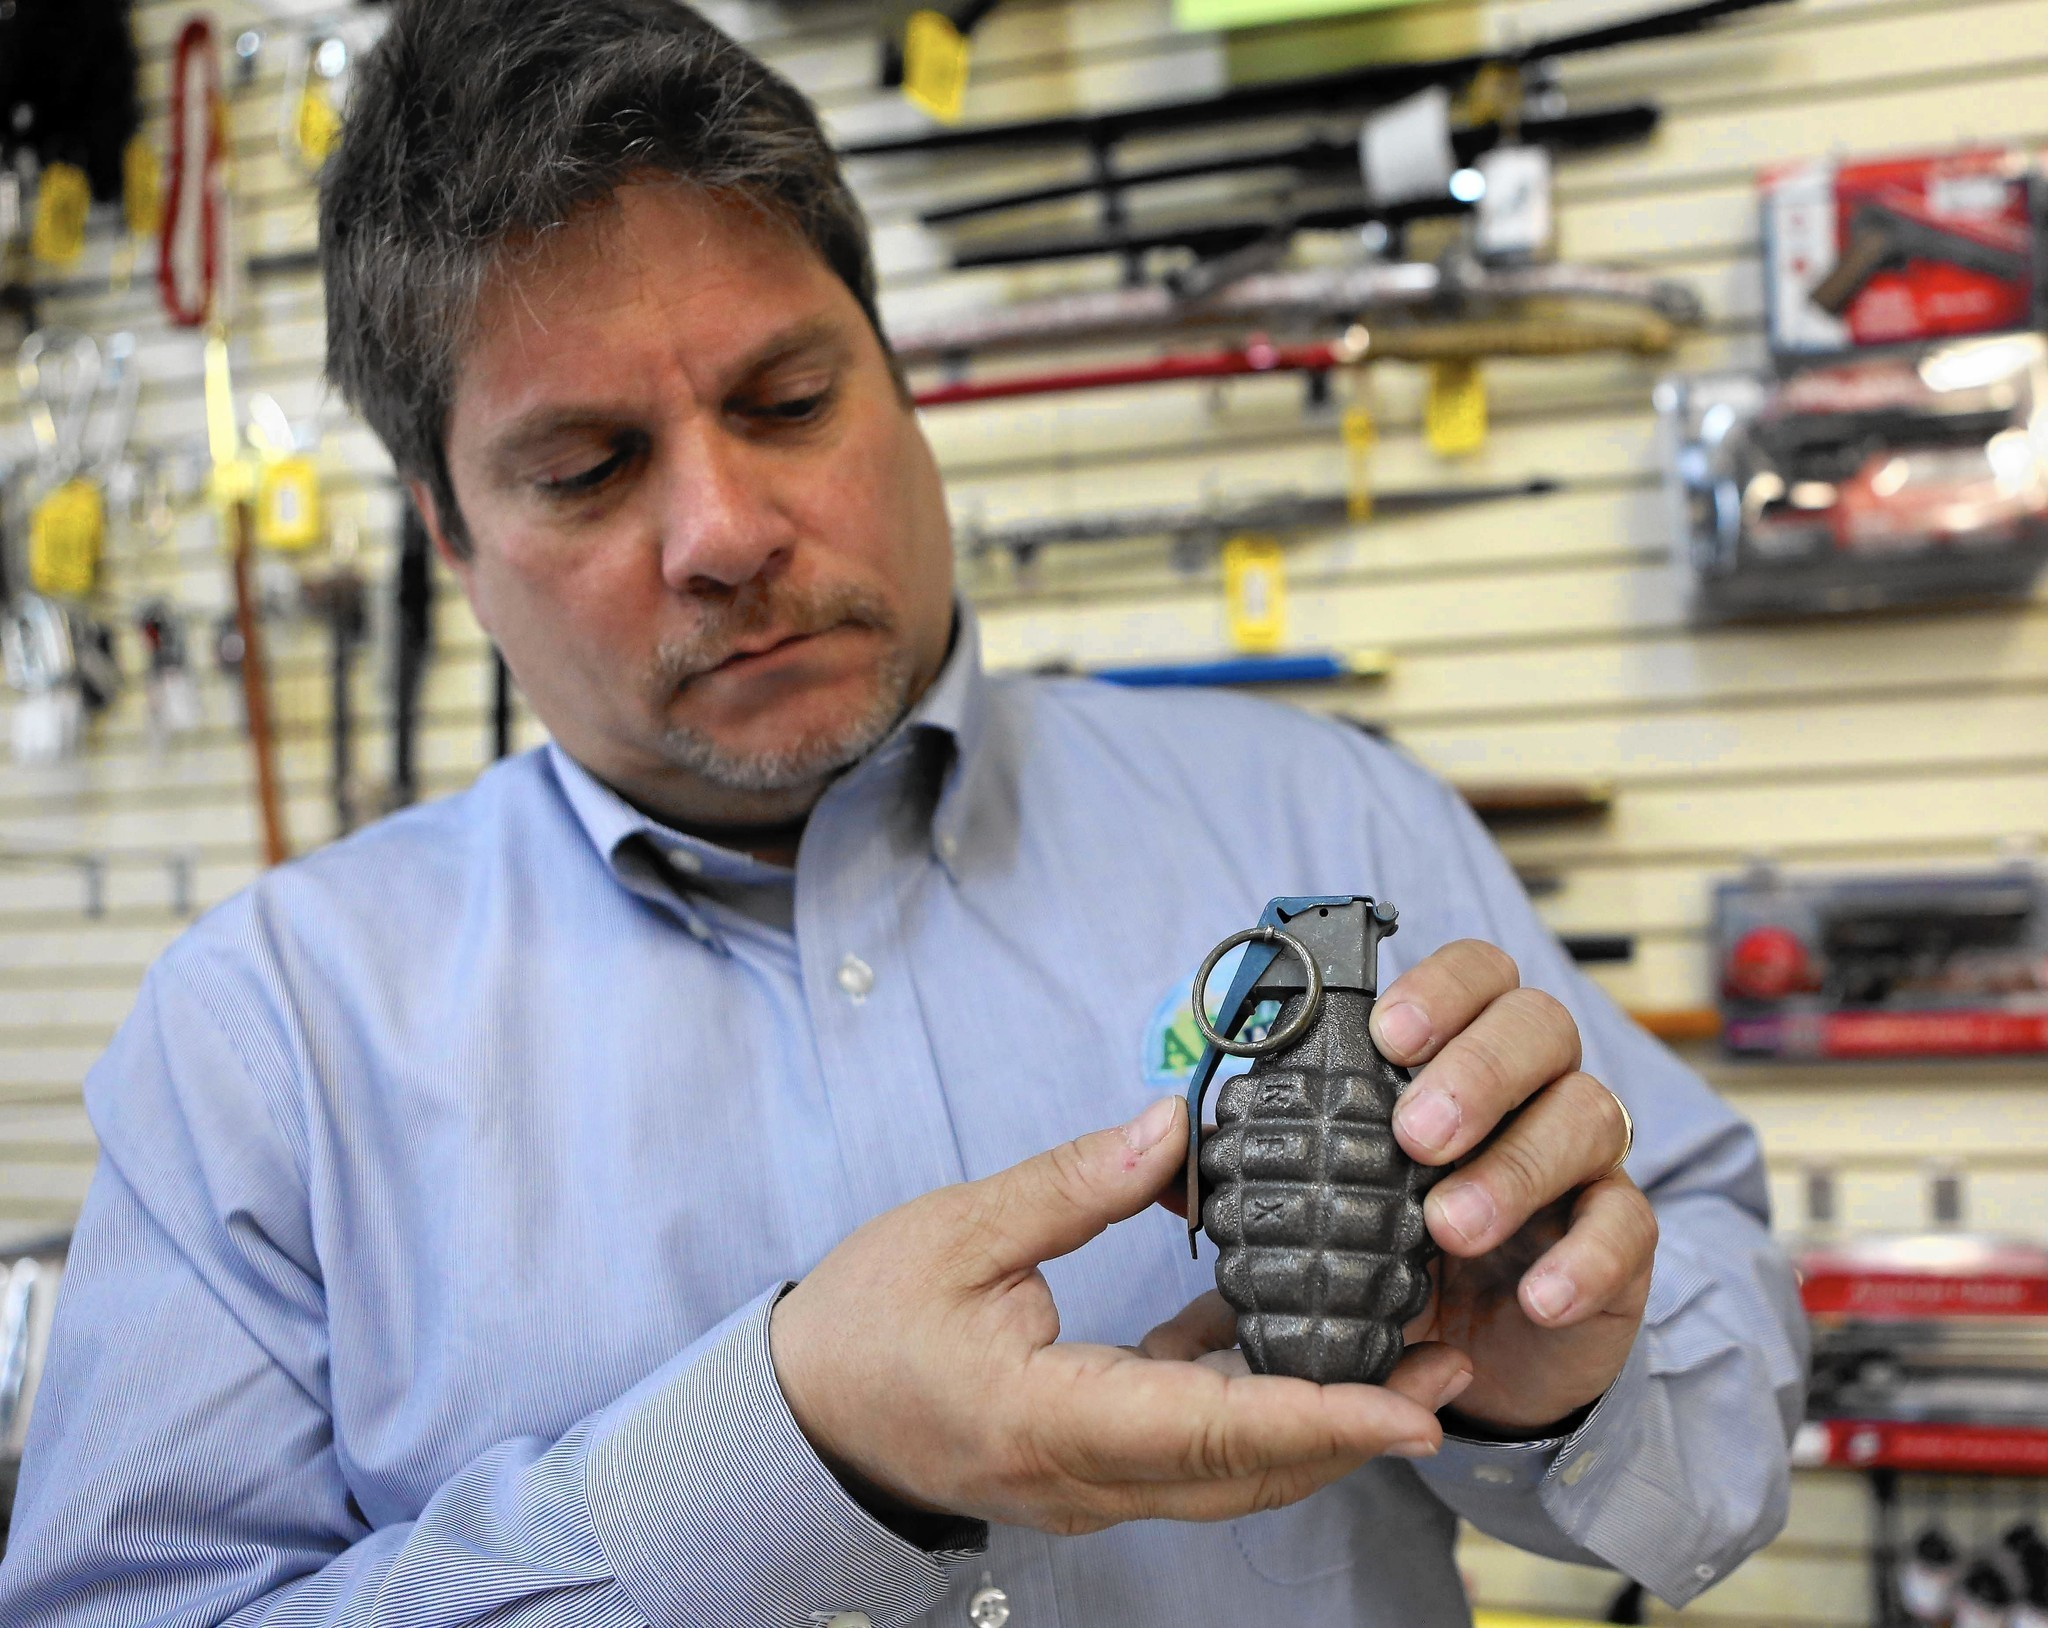 War keepsakes, lookalike grenades surface unexpectedly - Orlando